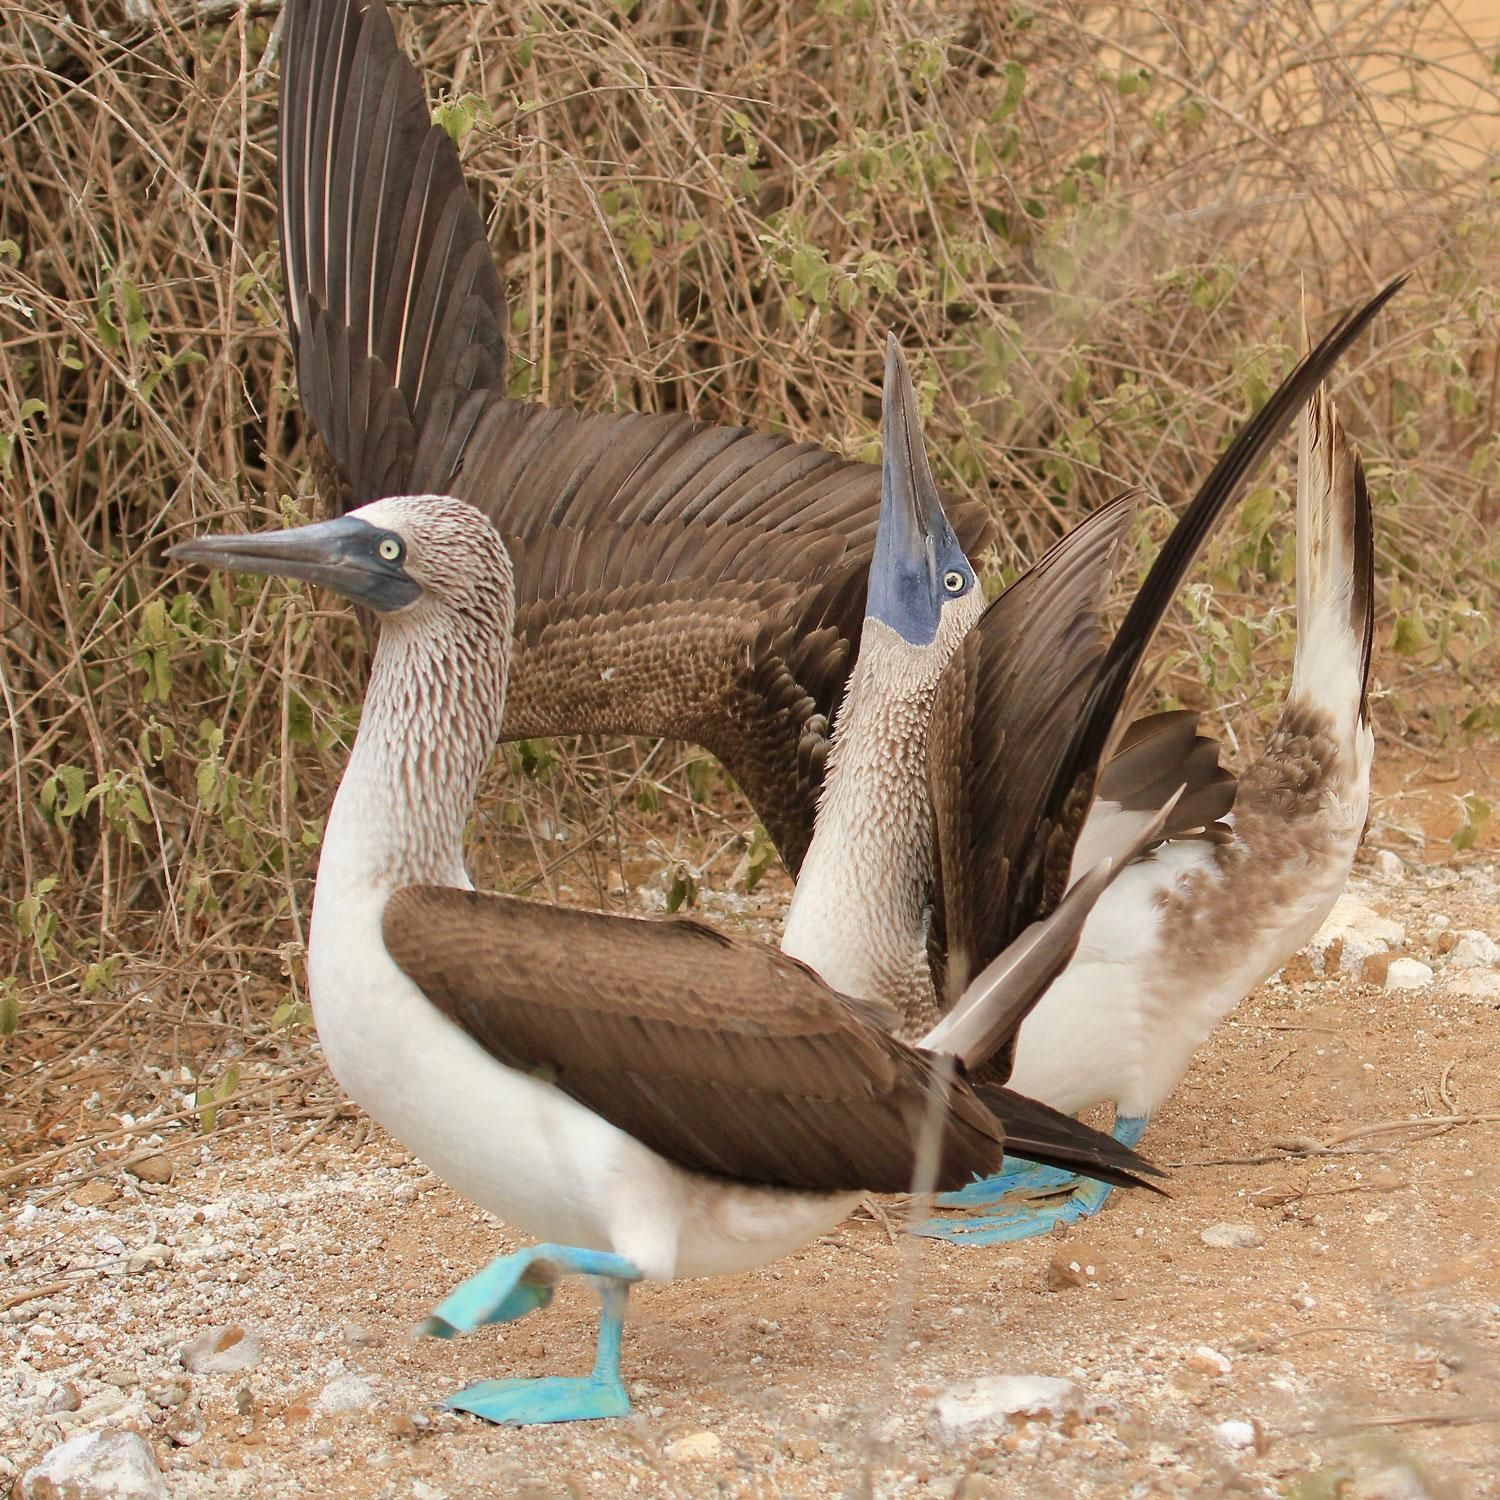 10 Amazing Animals to See in the Galápagos Islands